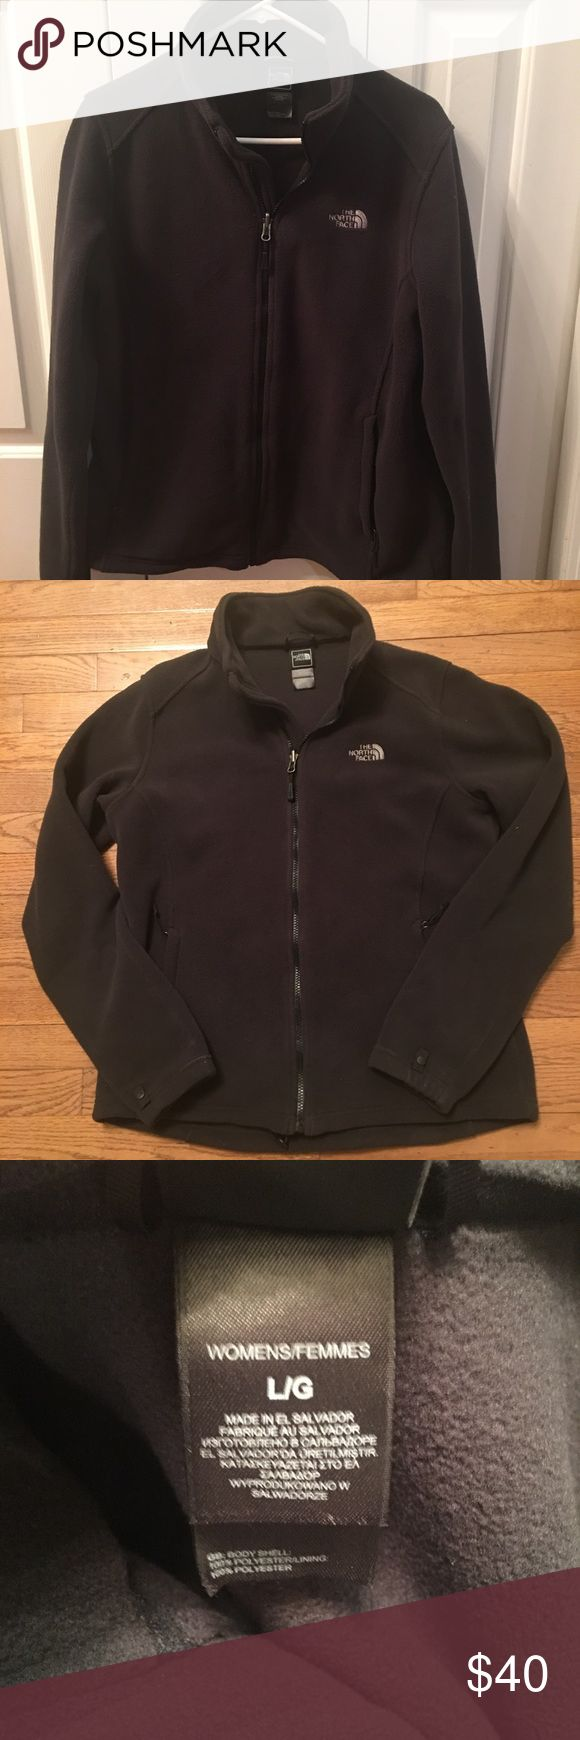 North Face Womens Jacket Black Sz Large North Face Women's Jacket Black Sz Large. In great condition. No holes or stains. North Face Jackets & Coats Utility Jackets